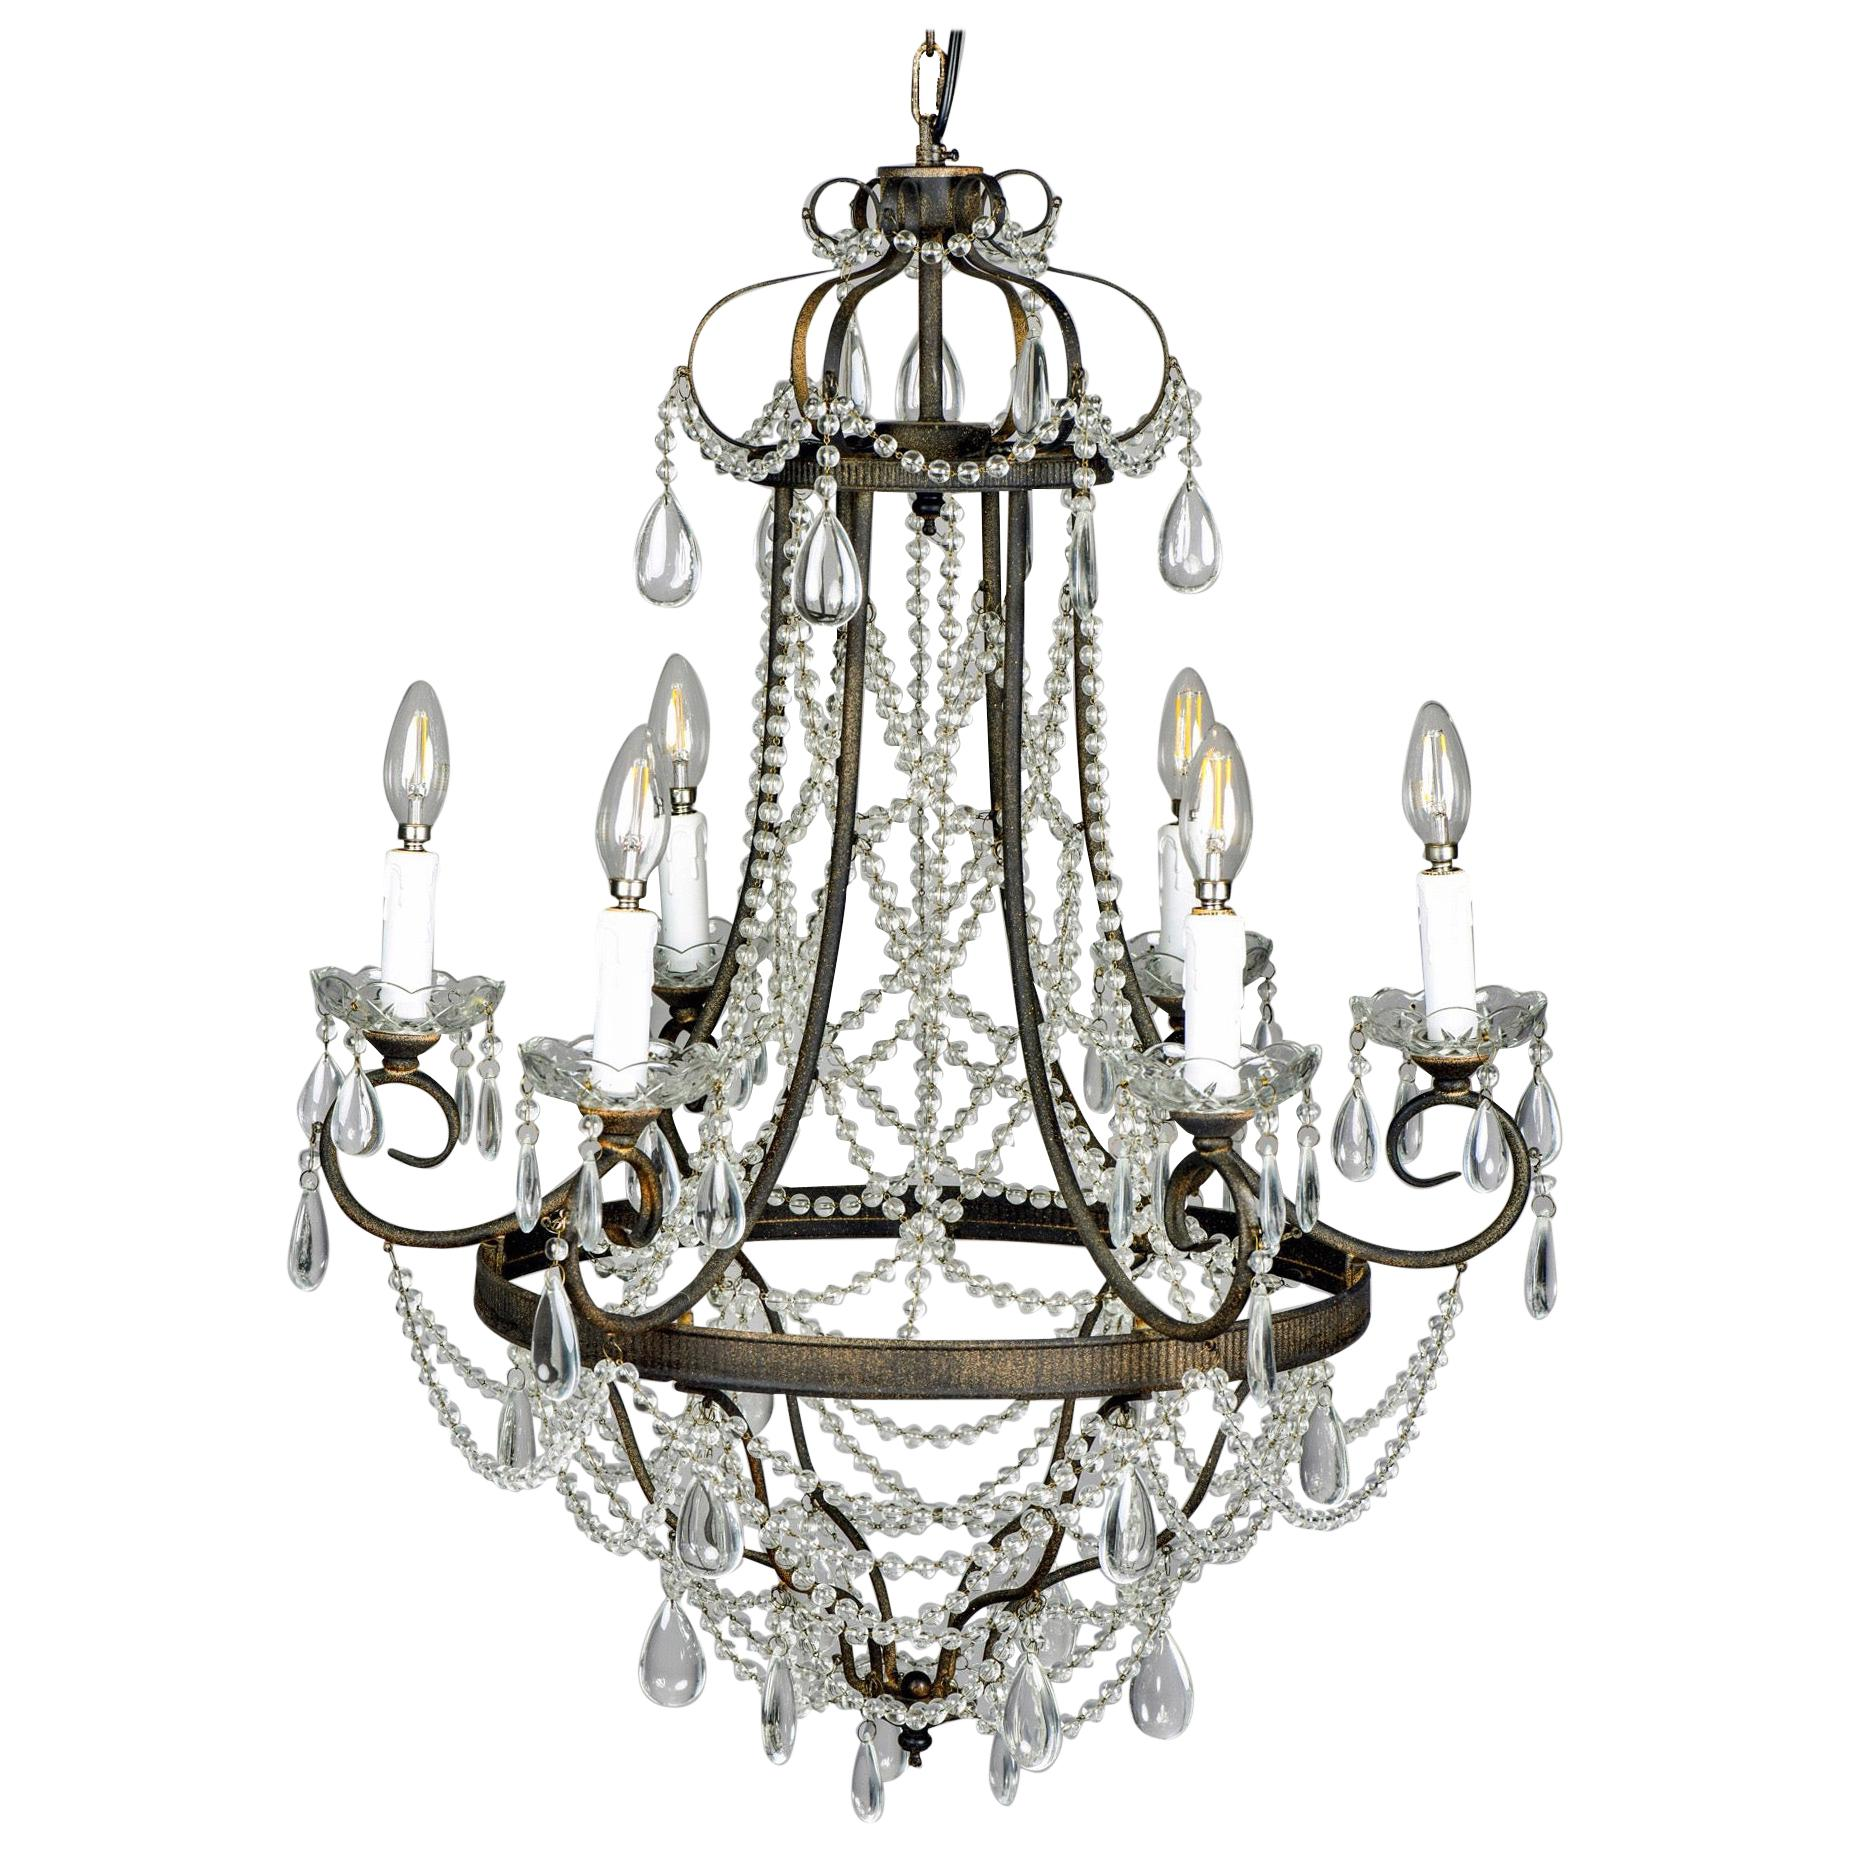 Six-Arm Iron and Crystal Chandelier